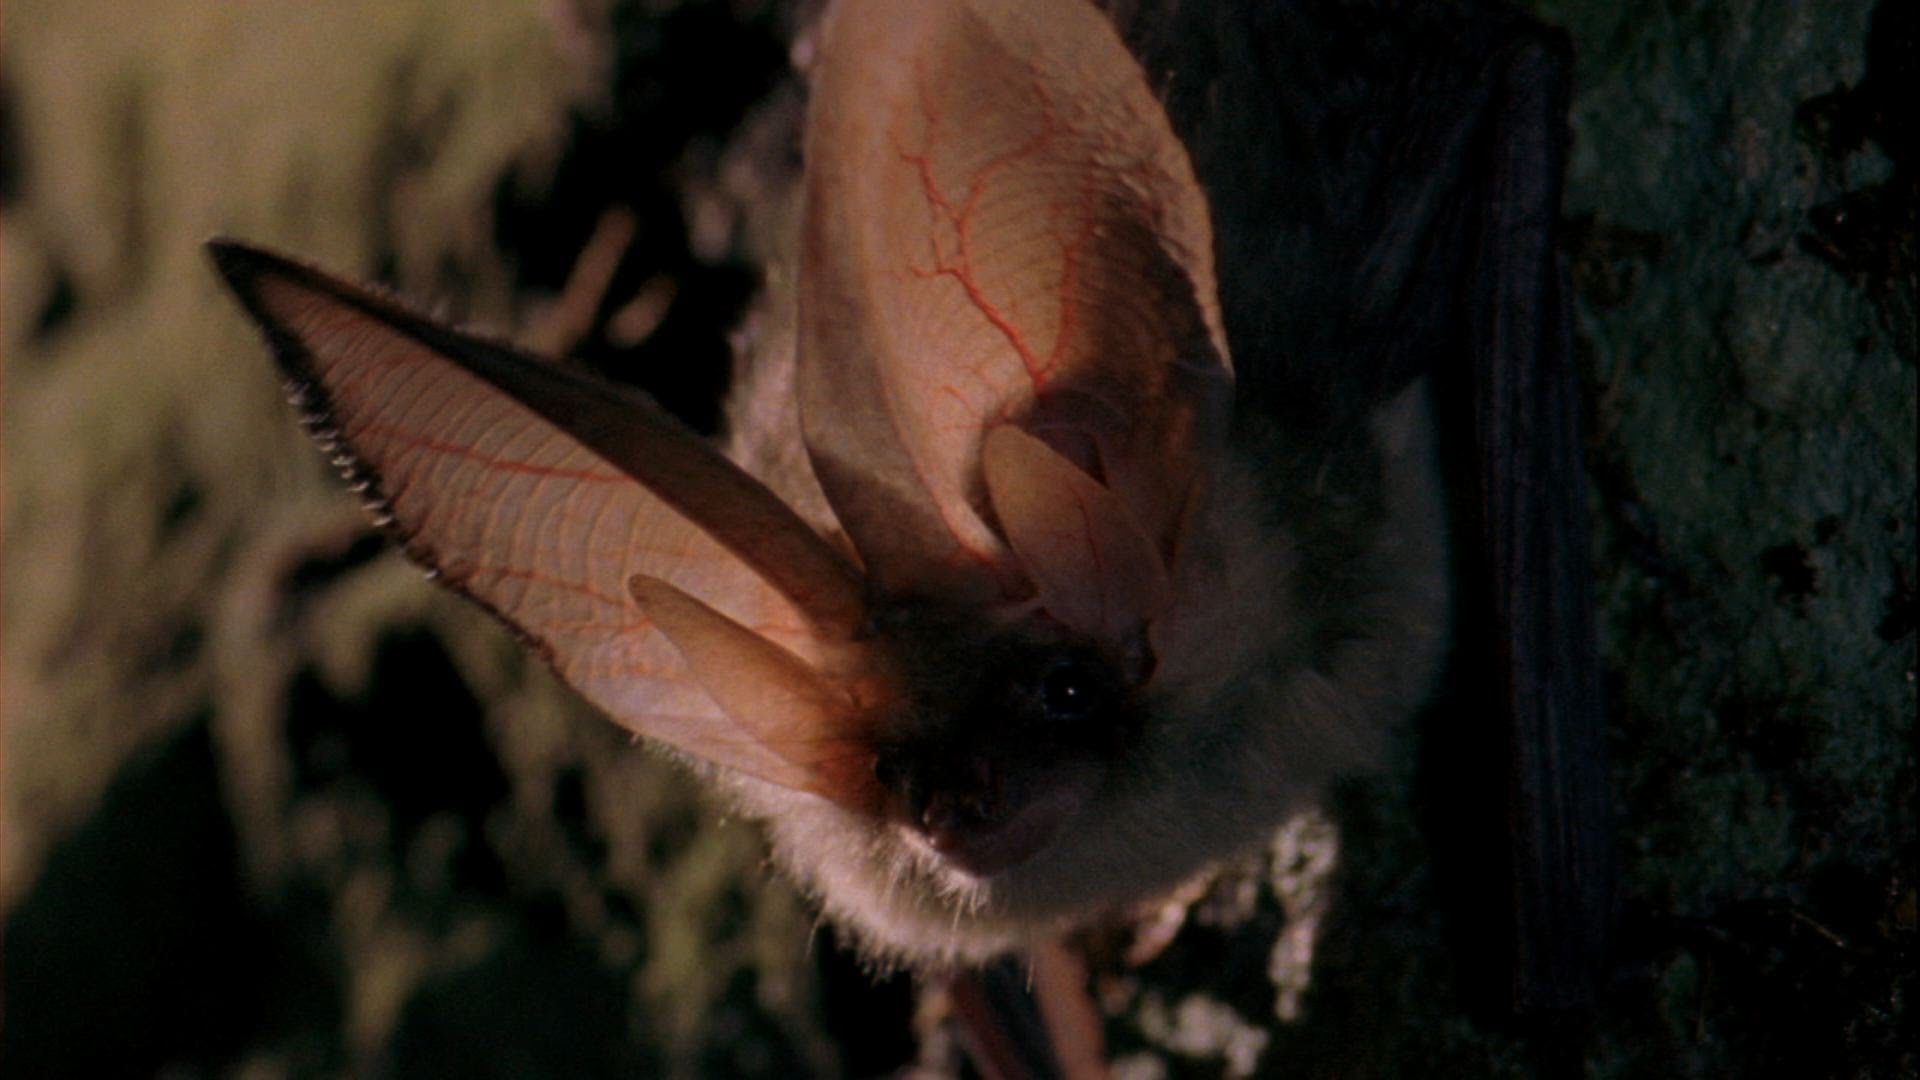 Northern Long-Eared Bat